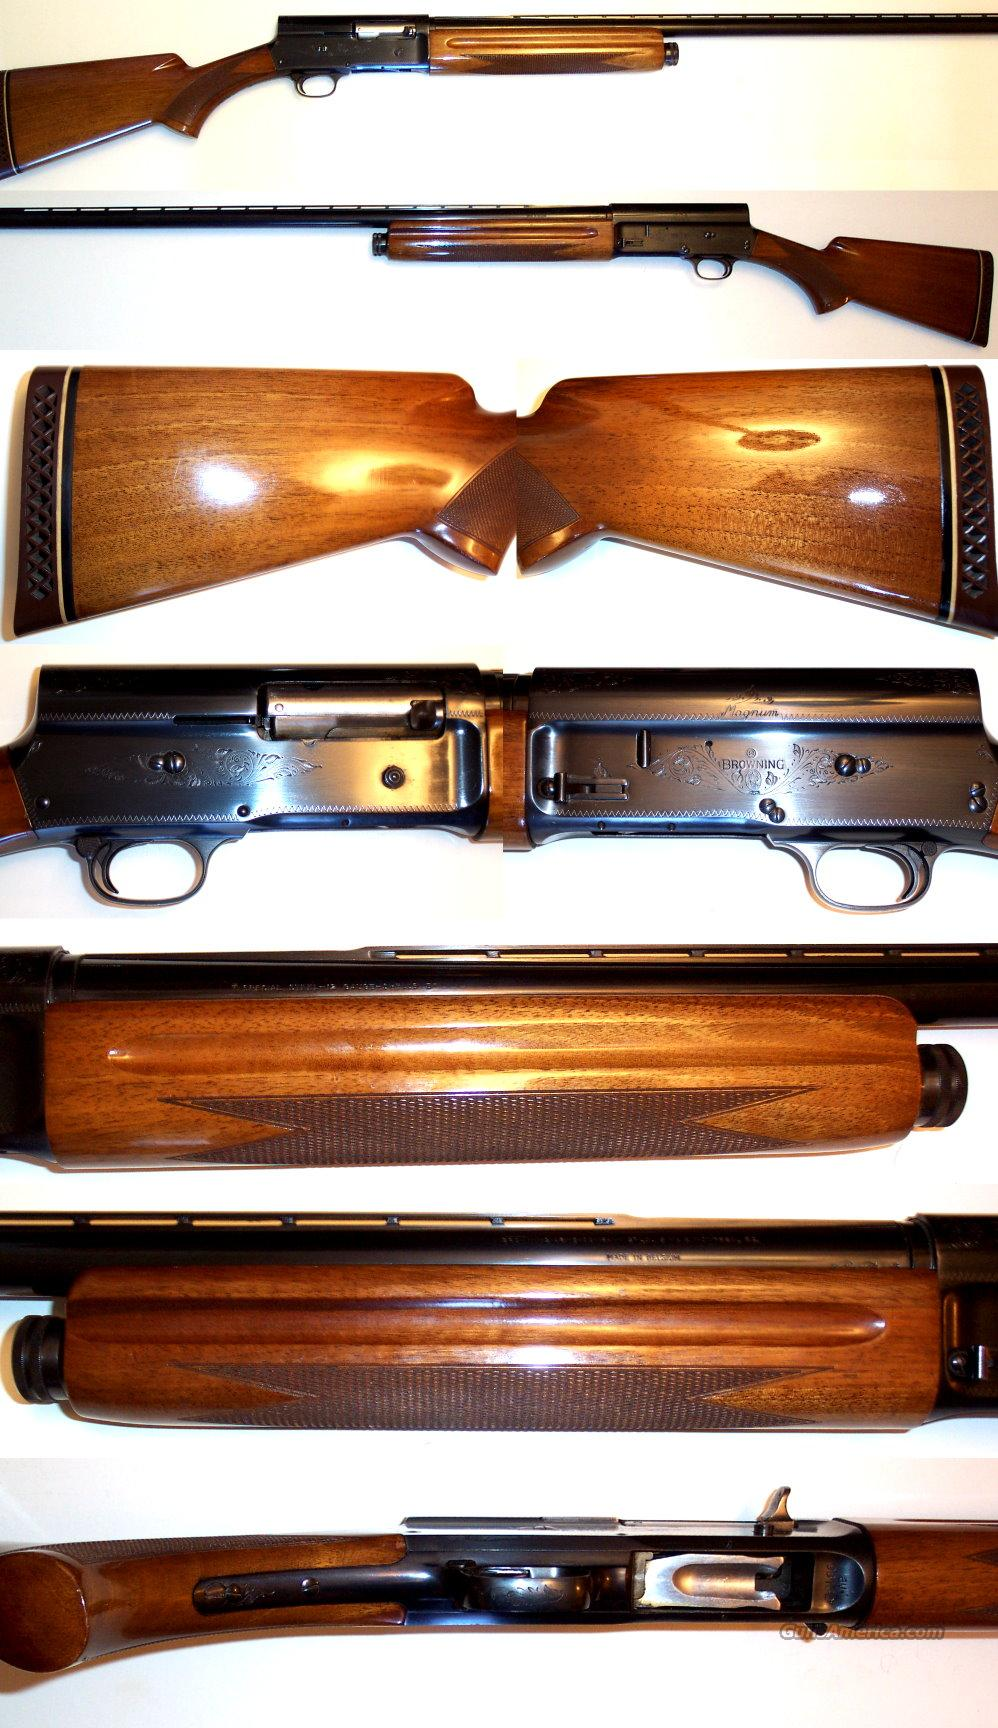 '69 Belgium Browning MAG 12 w 32' barrel  Guns > Shotguns > Browning Shotguns > Autoloaders > Hunting